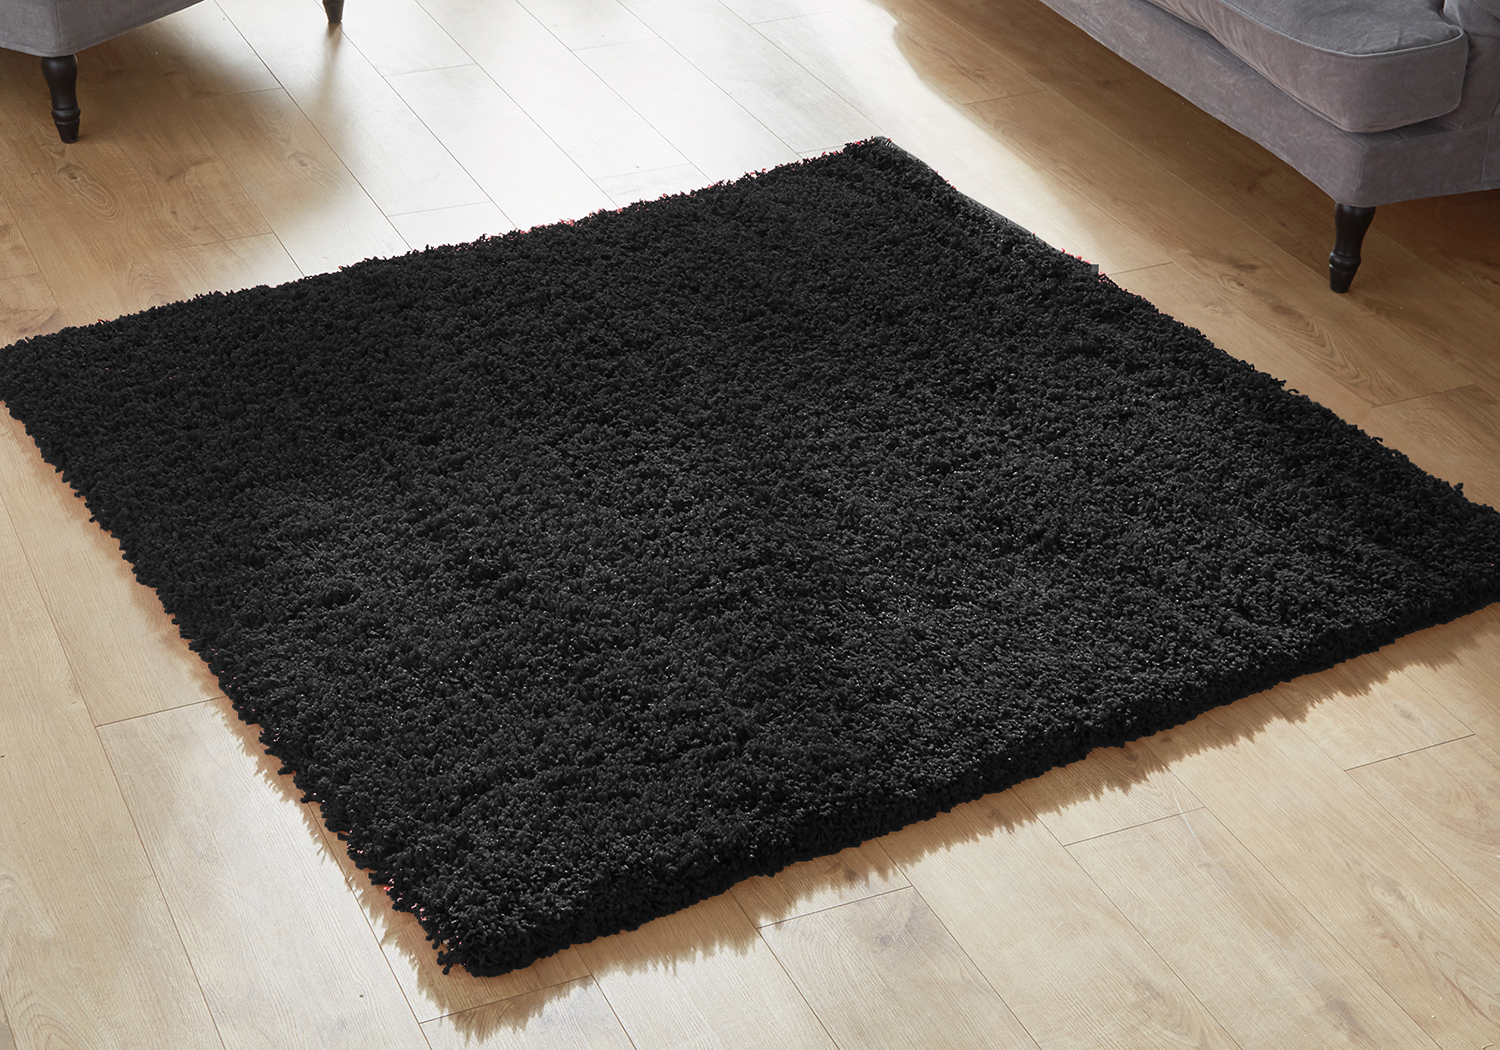 MODERN SMALL EXTRA LARGE CIRCLE ROUND RUNNER 5CM HIGH EVEREST SHAGGY THICK RUGS